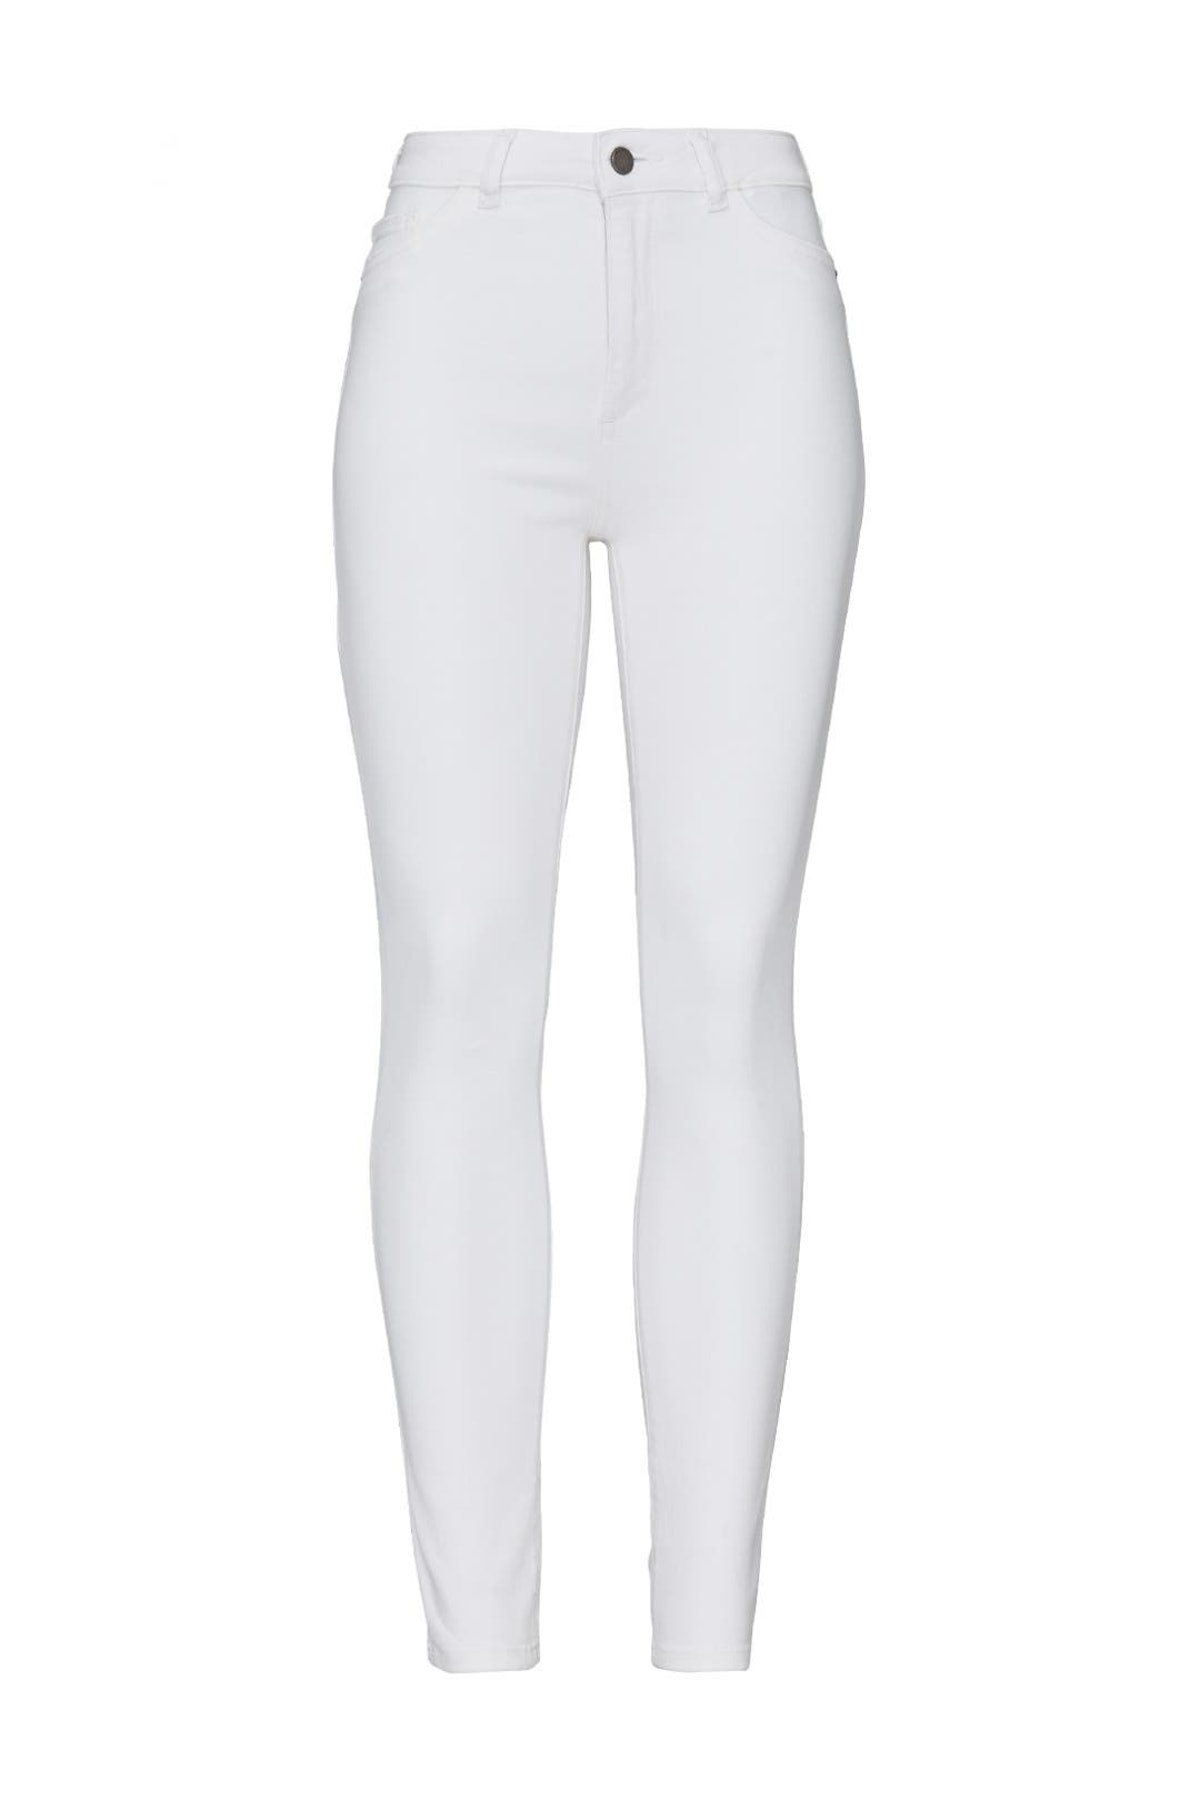 White Farrow high rise jeans from DL1961, available to shop or rent via Rent The Runway.